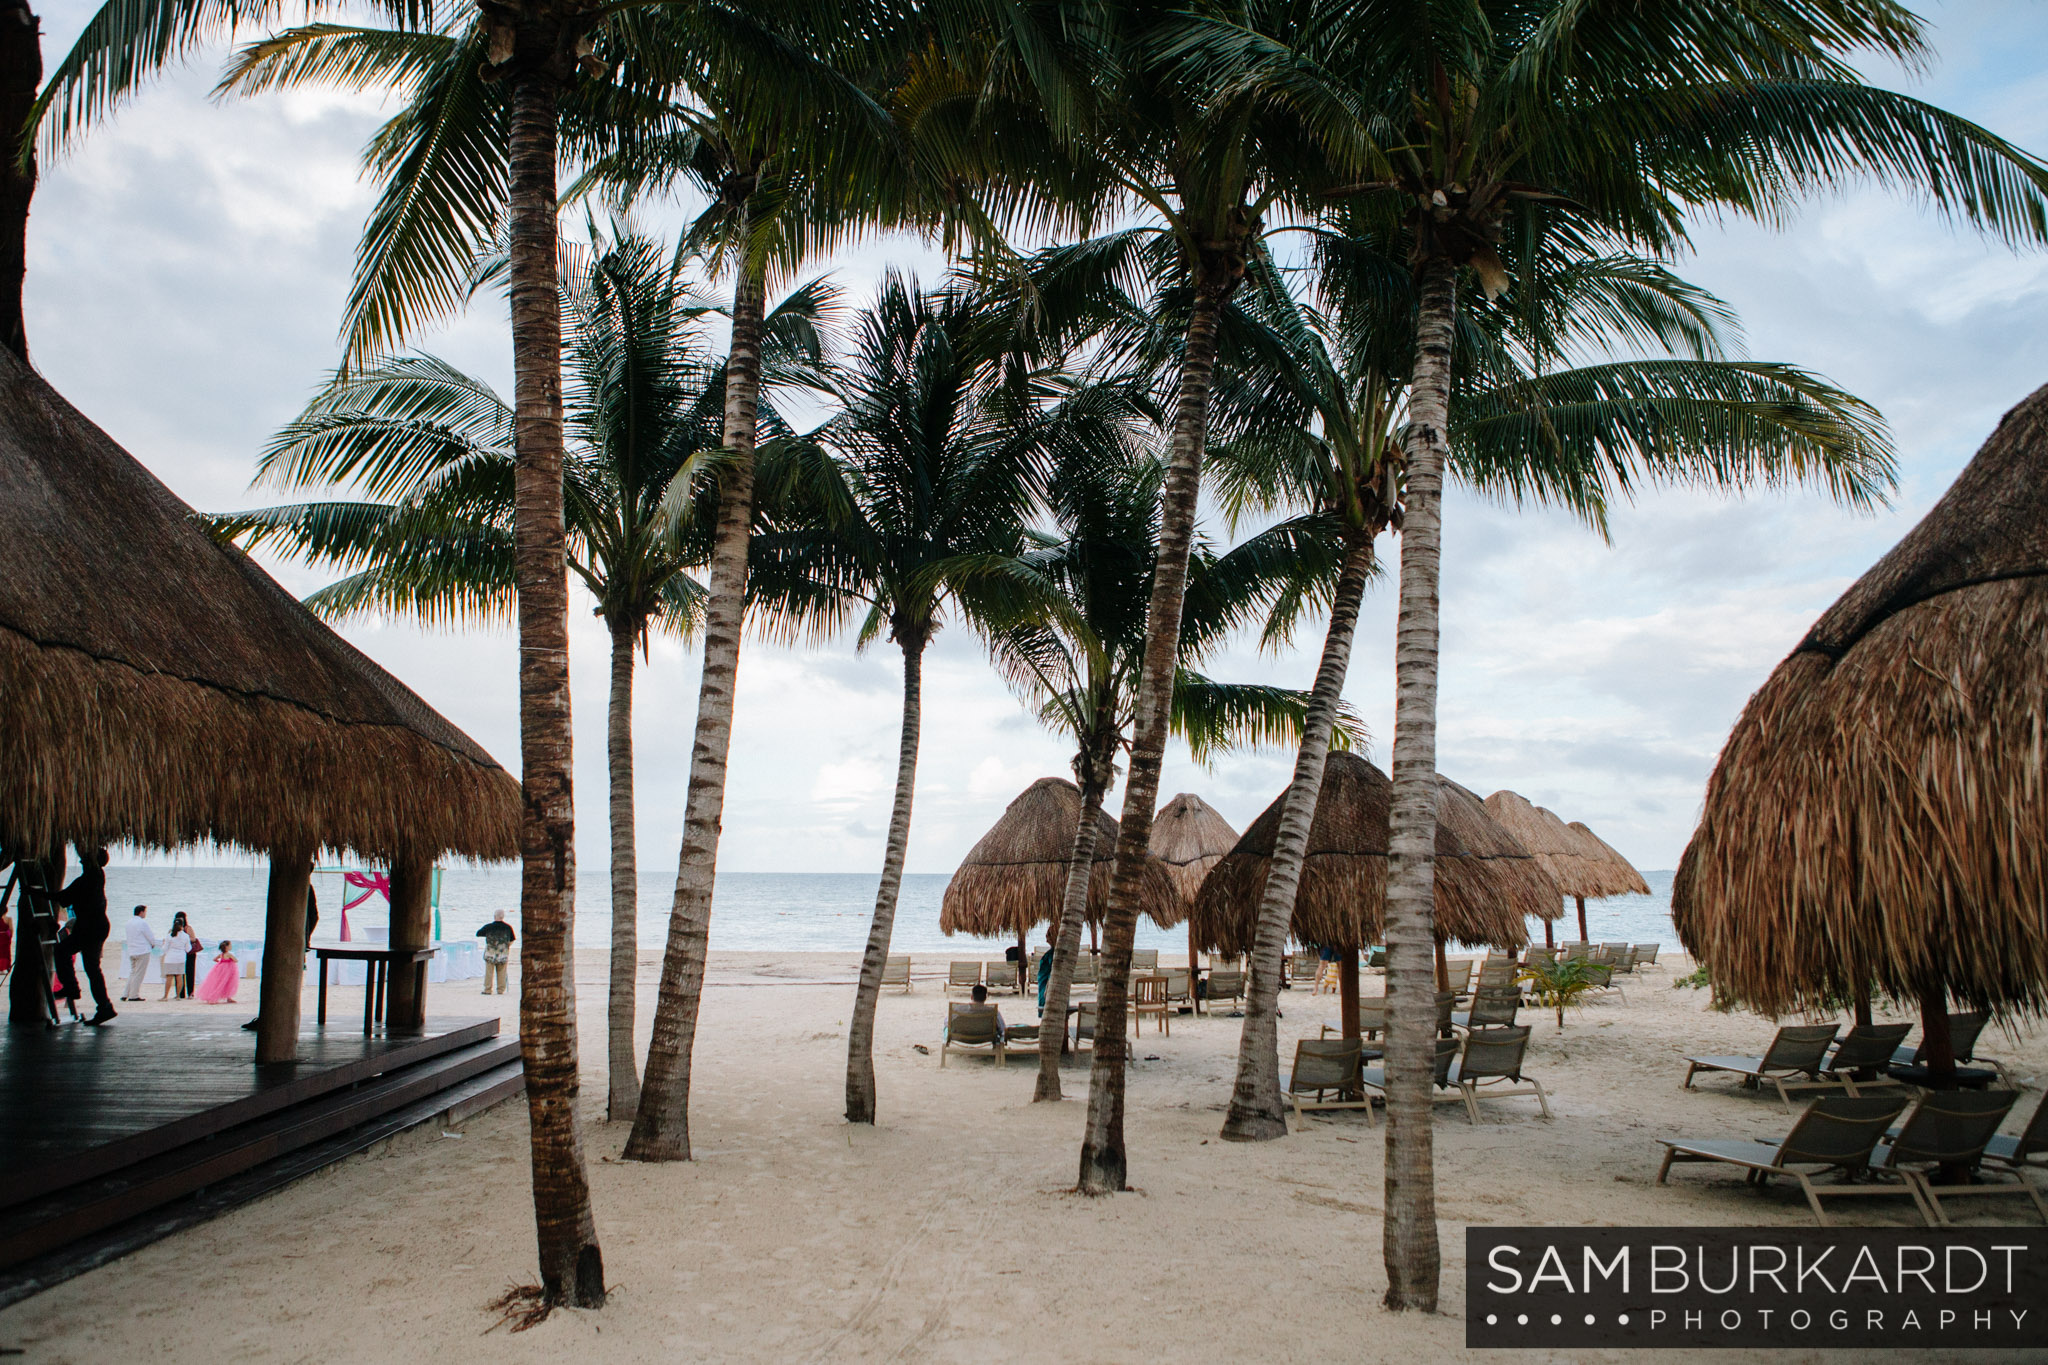 samburkardt-mexico-beach-wedding-playa-mujeres_0001.jpg